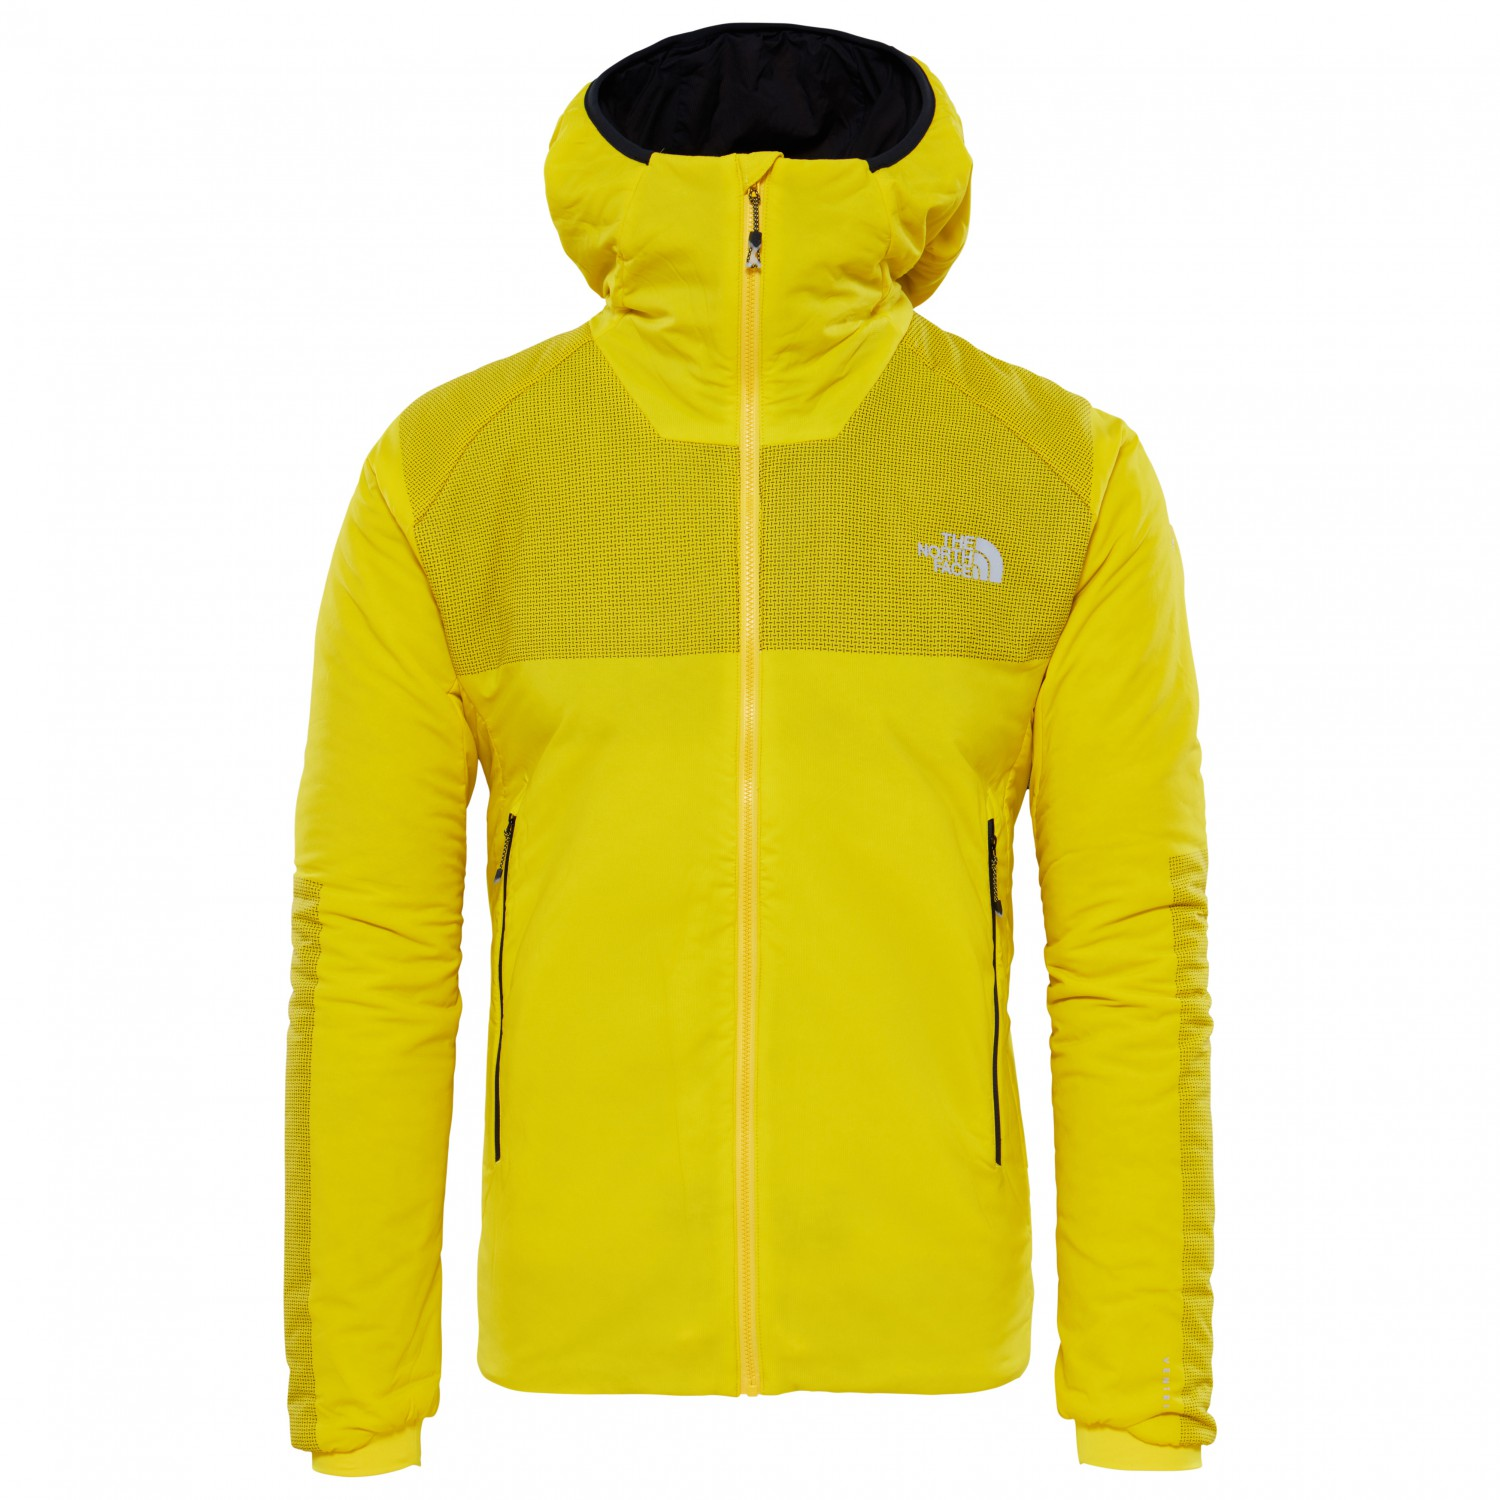 88d9f163a The North Face - Summit L3 Ventrix Hoodie - Synthetic jacket - Canary  Yellow | S